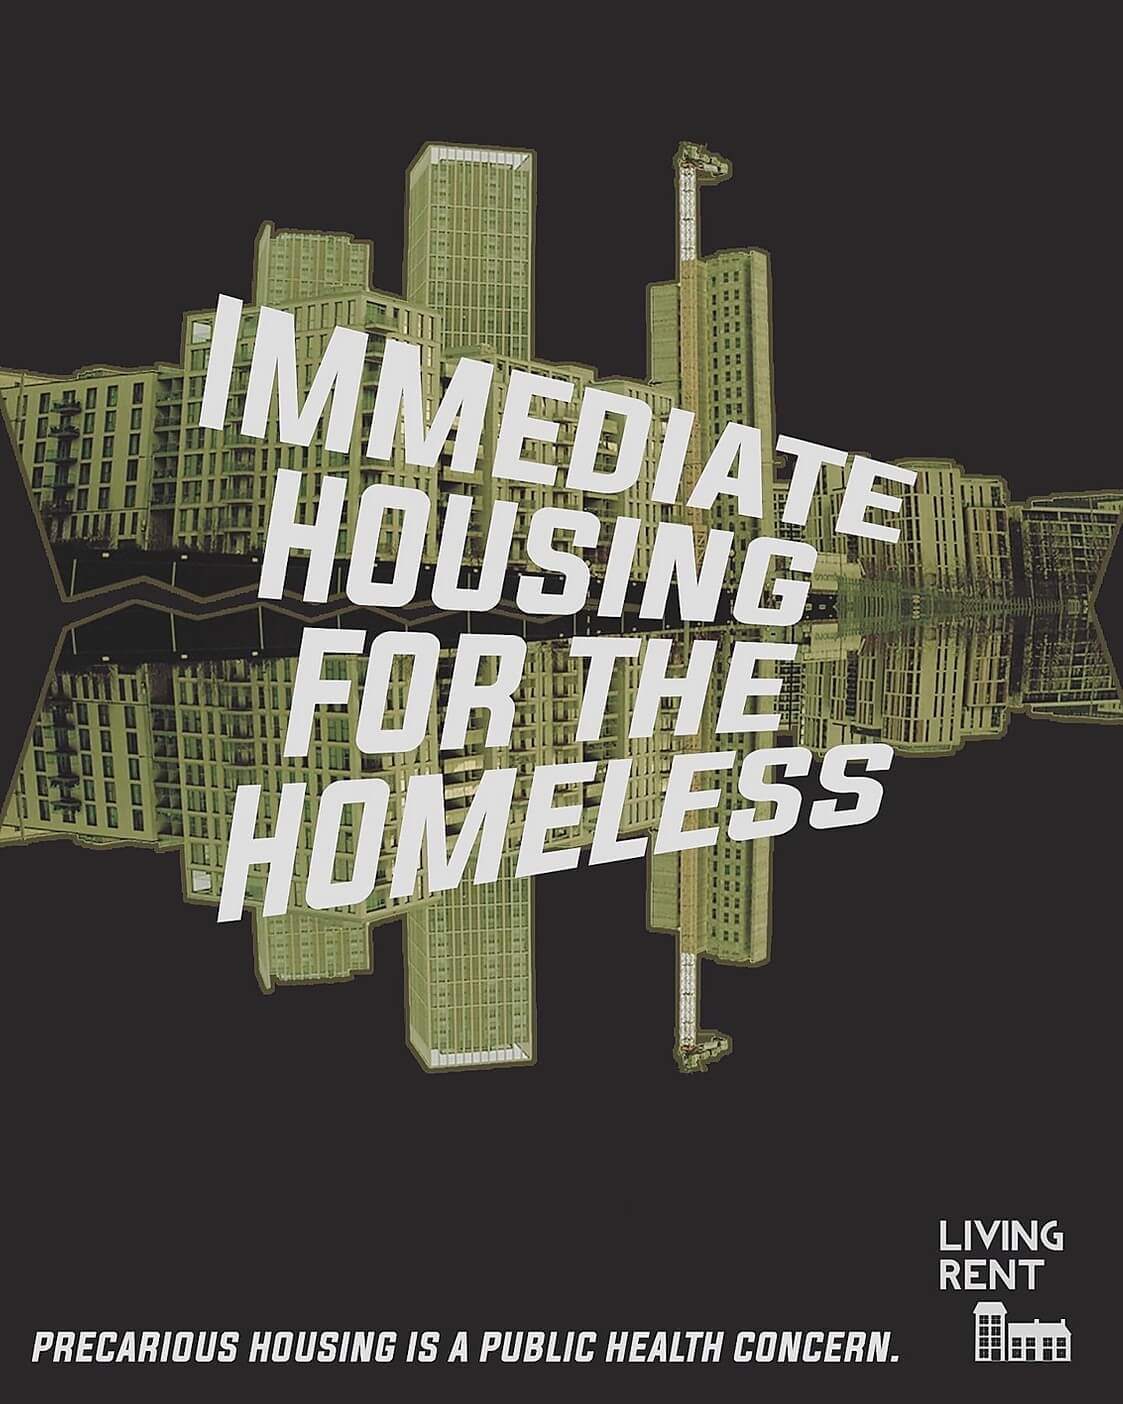 immediate housing for the homeless living rent coronavirus poster